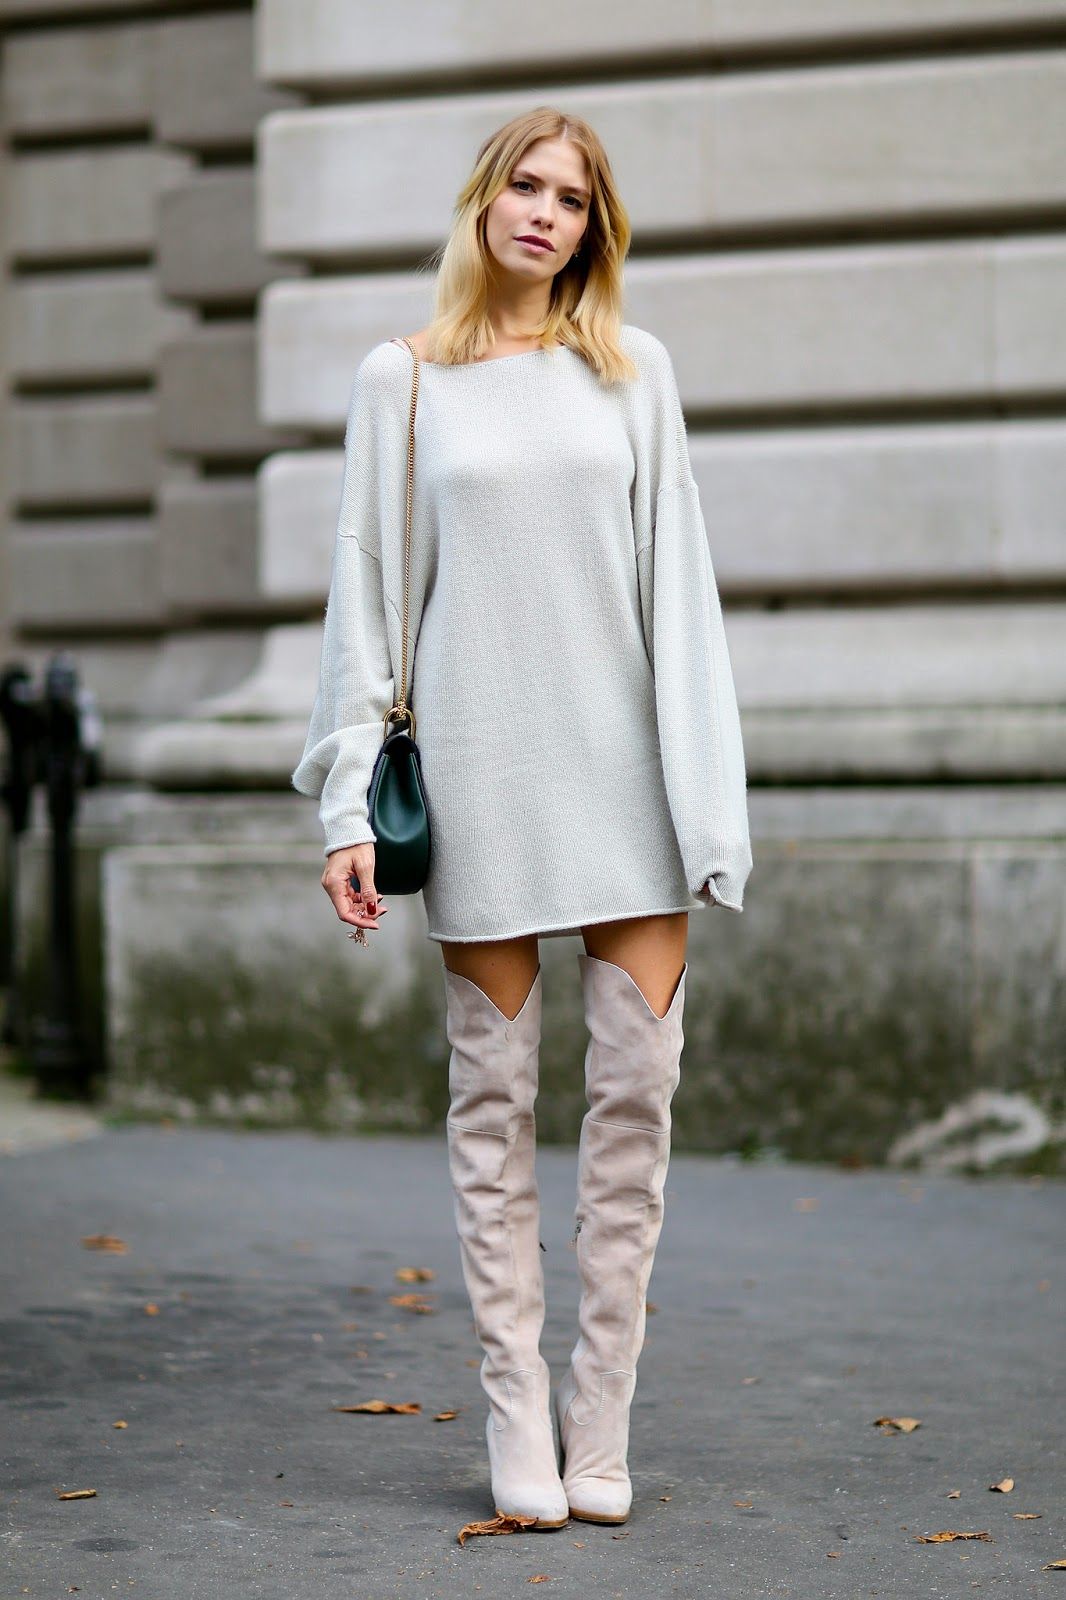 DC2NYConfessions: Fall 2014 Trend: Over-the-Knee Boots